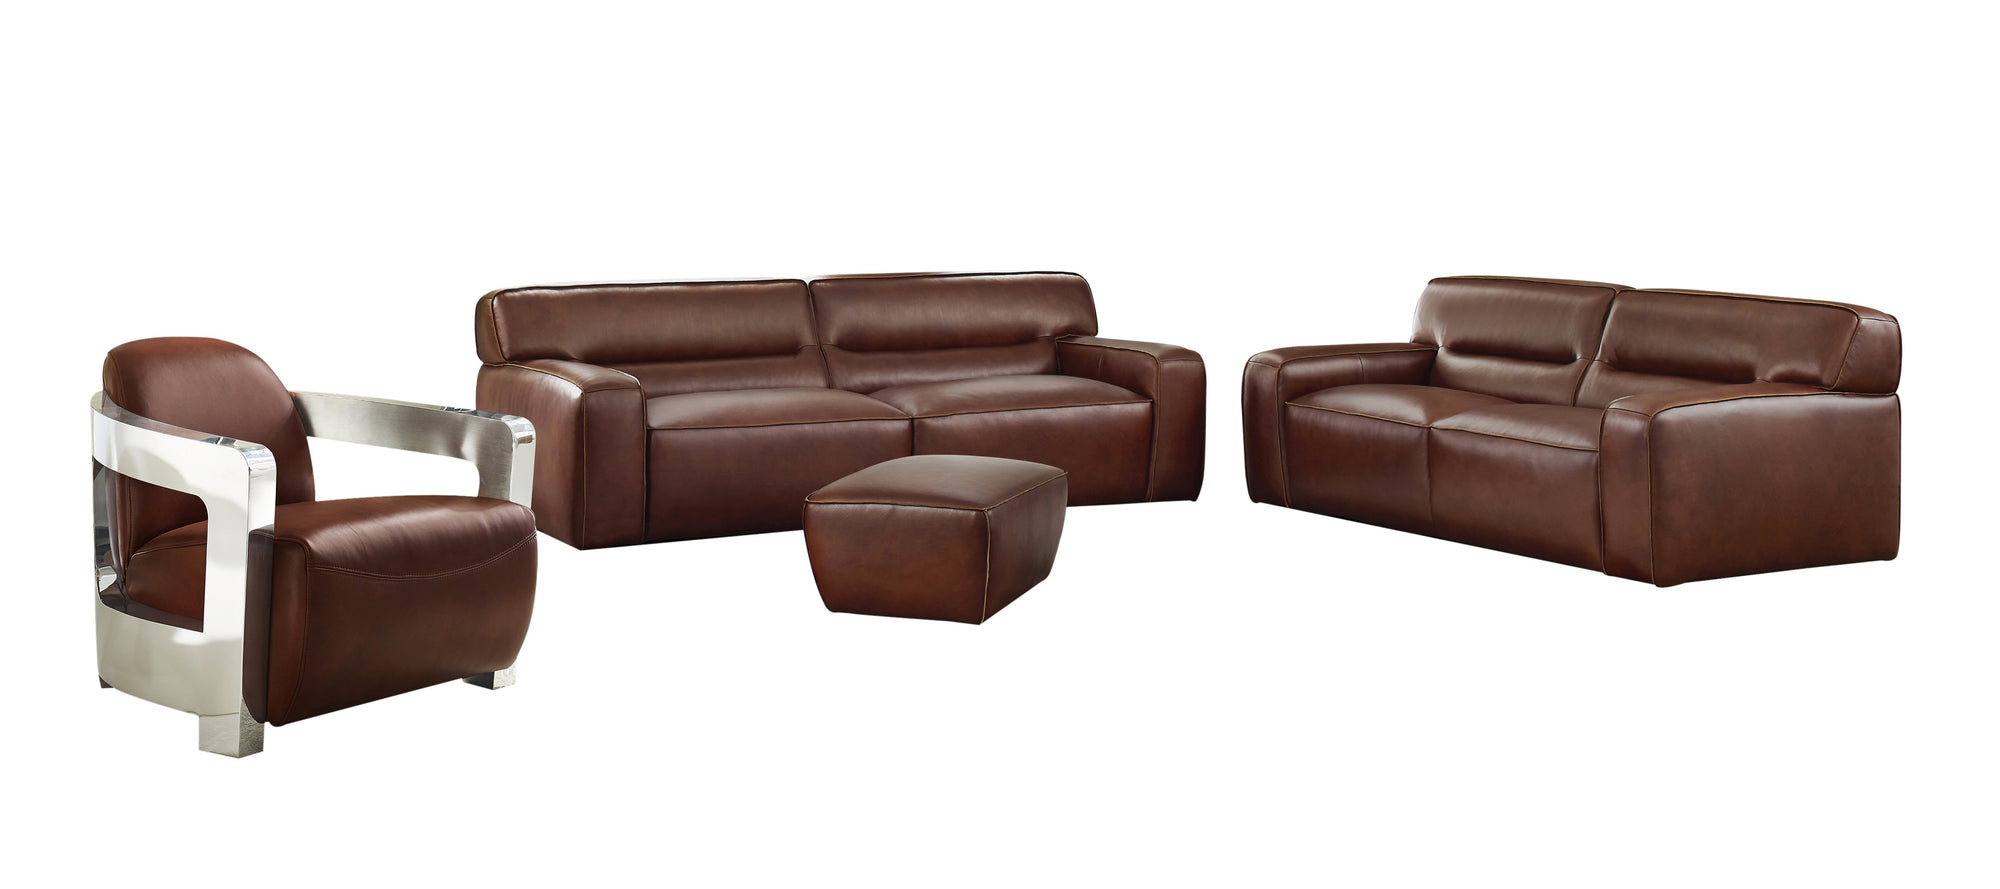 Sunset Trading Milan Leather 4 Piece Living Room Set -Brown by Sunset Trading - HomeKingz.com - Online furniture shop with the best prices & premium customer support!